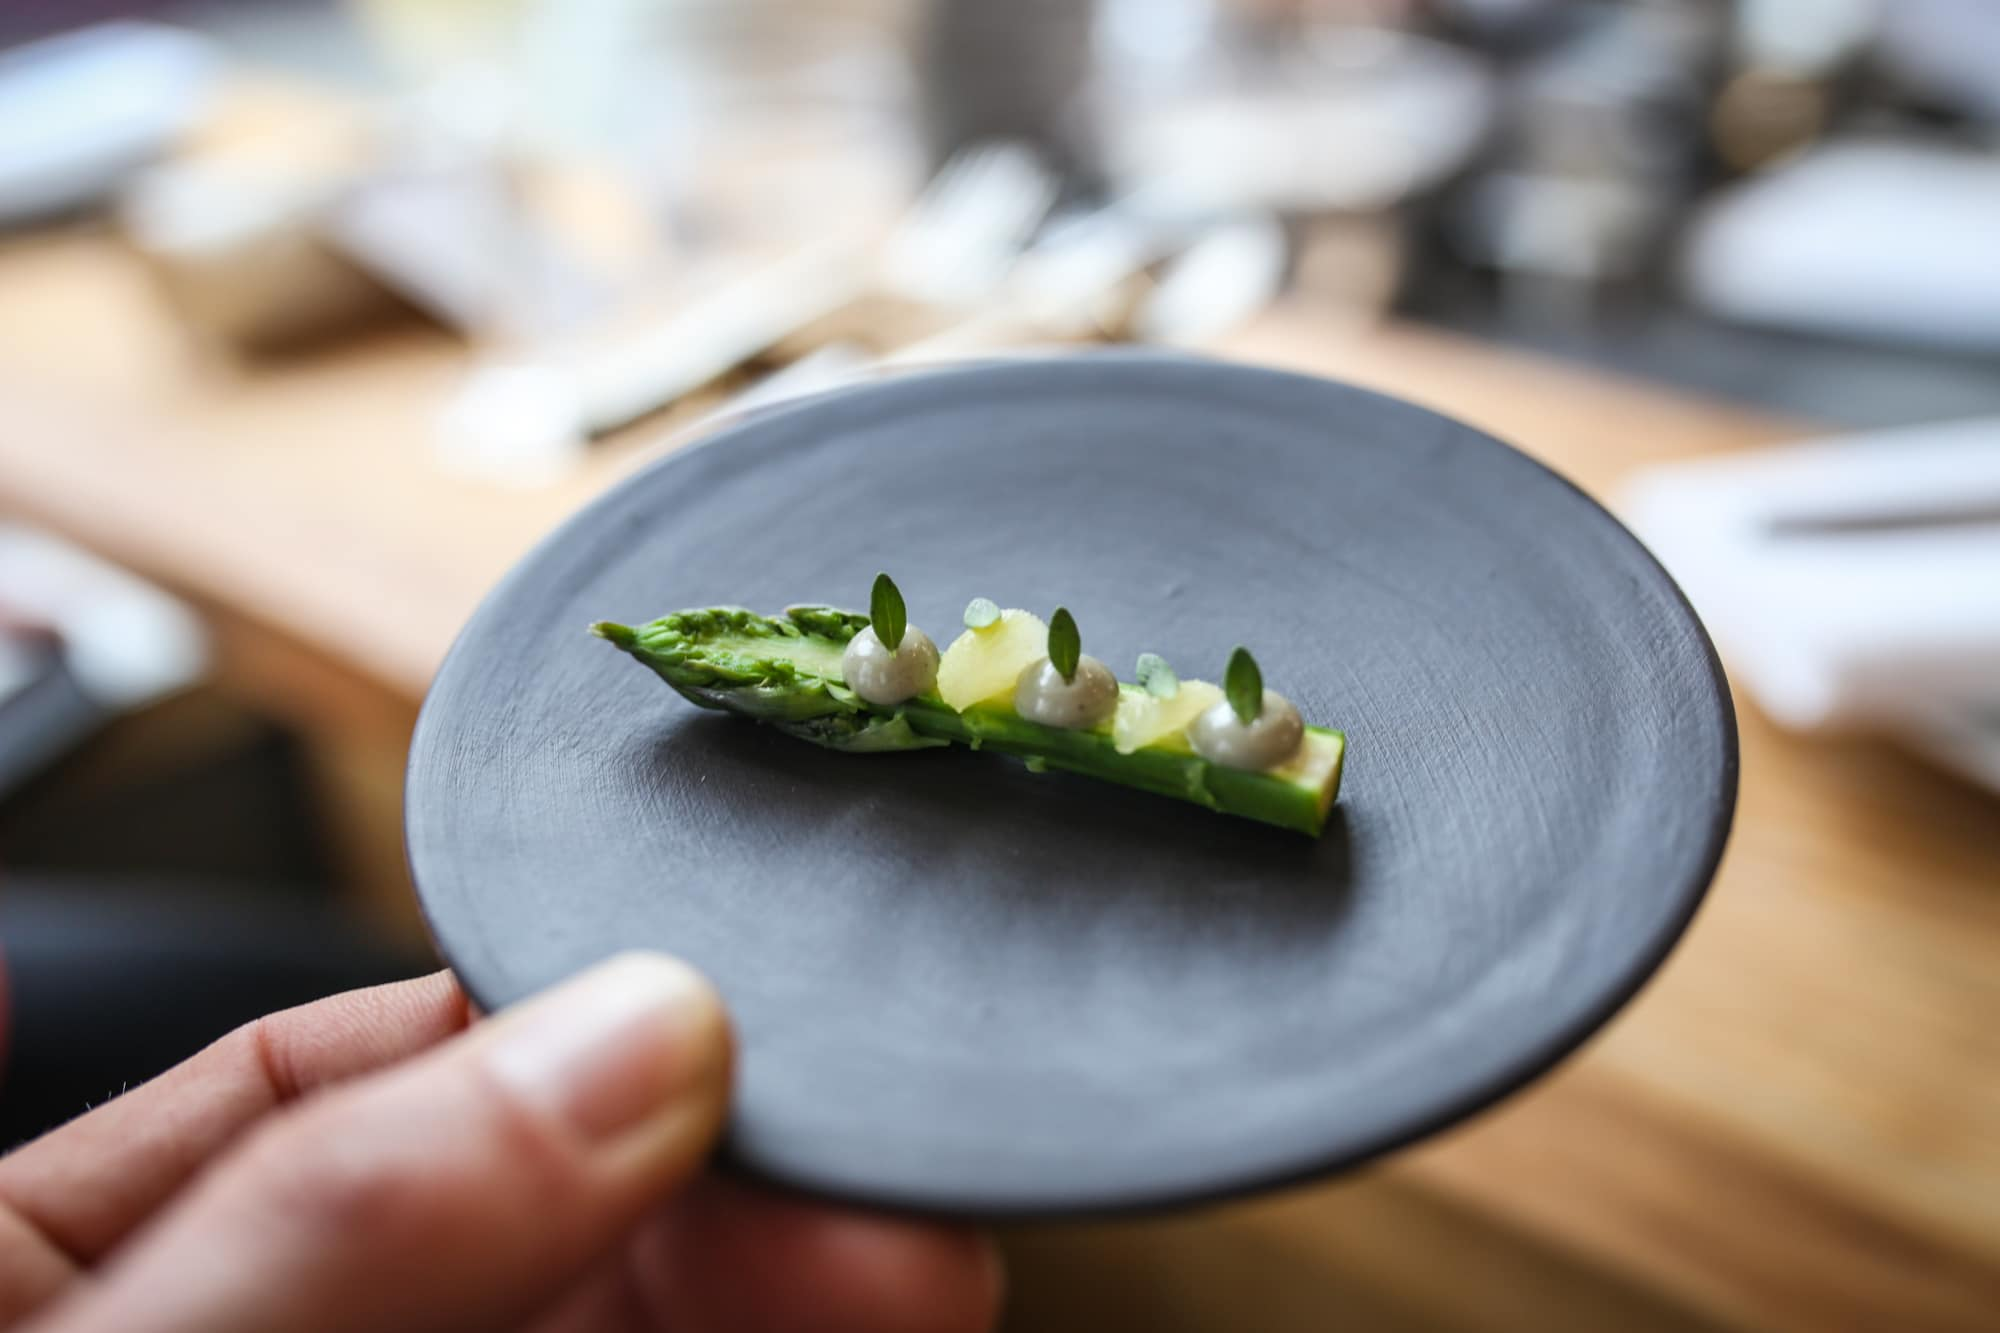 Asparagus Starter Isaac at Food trends 2018